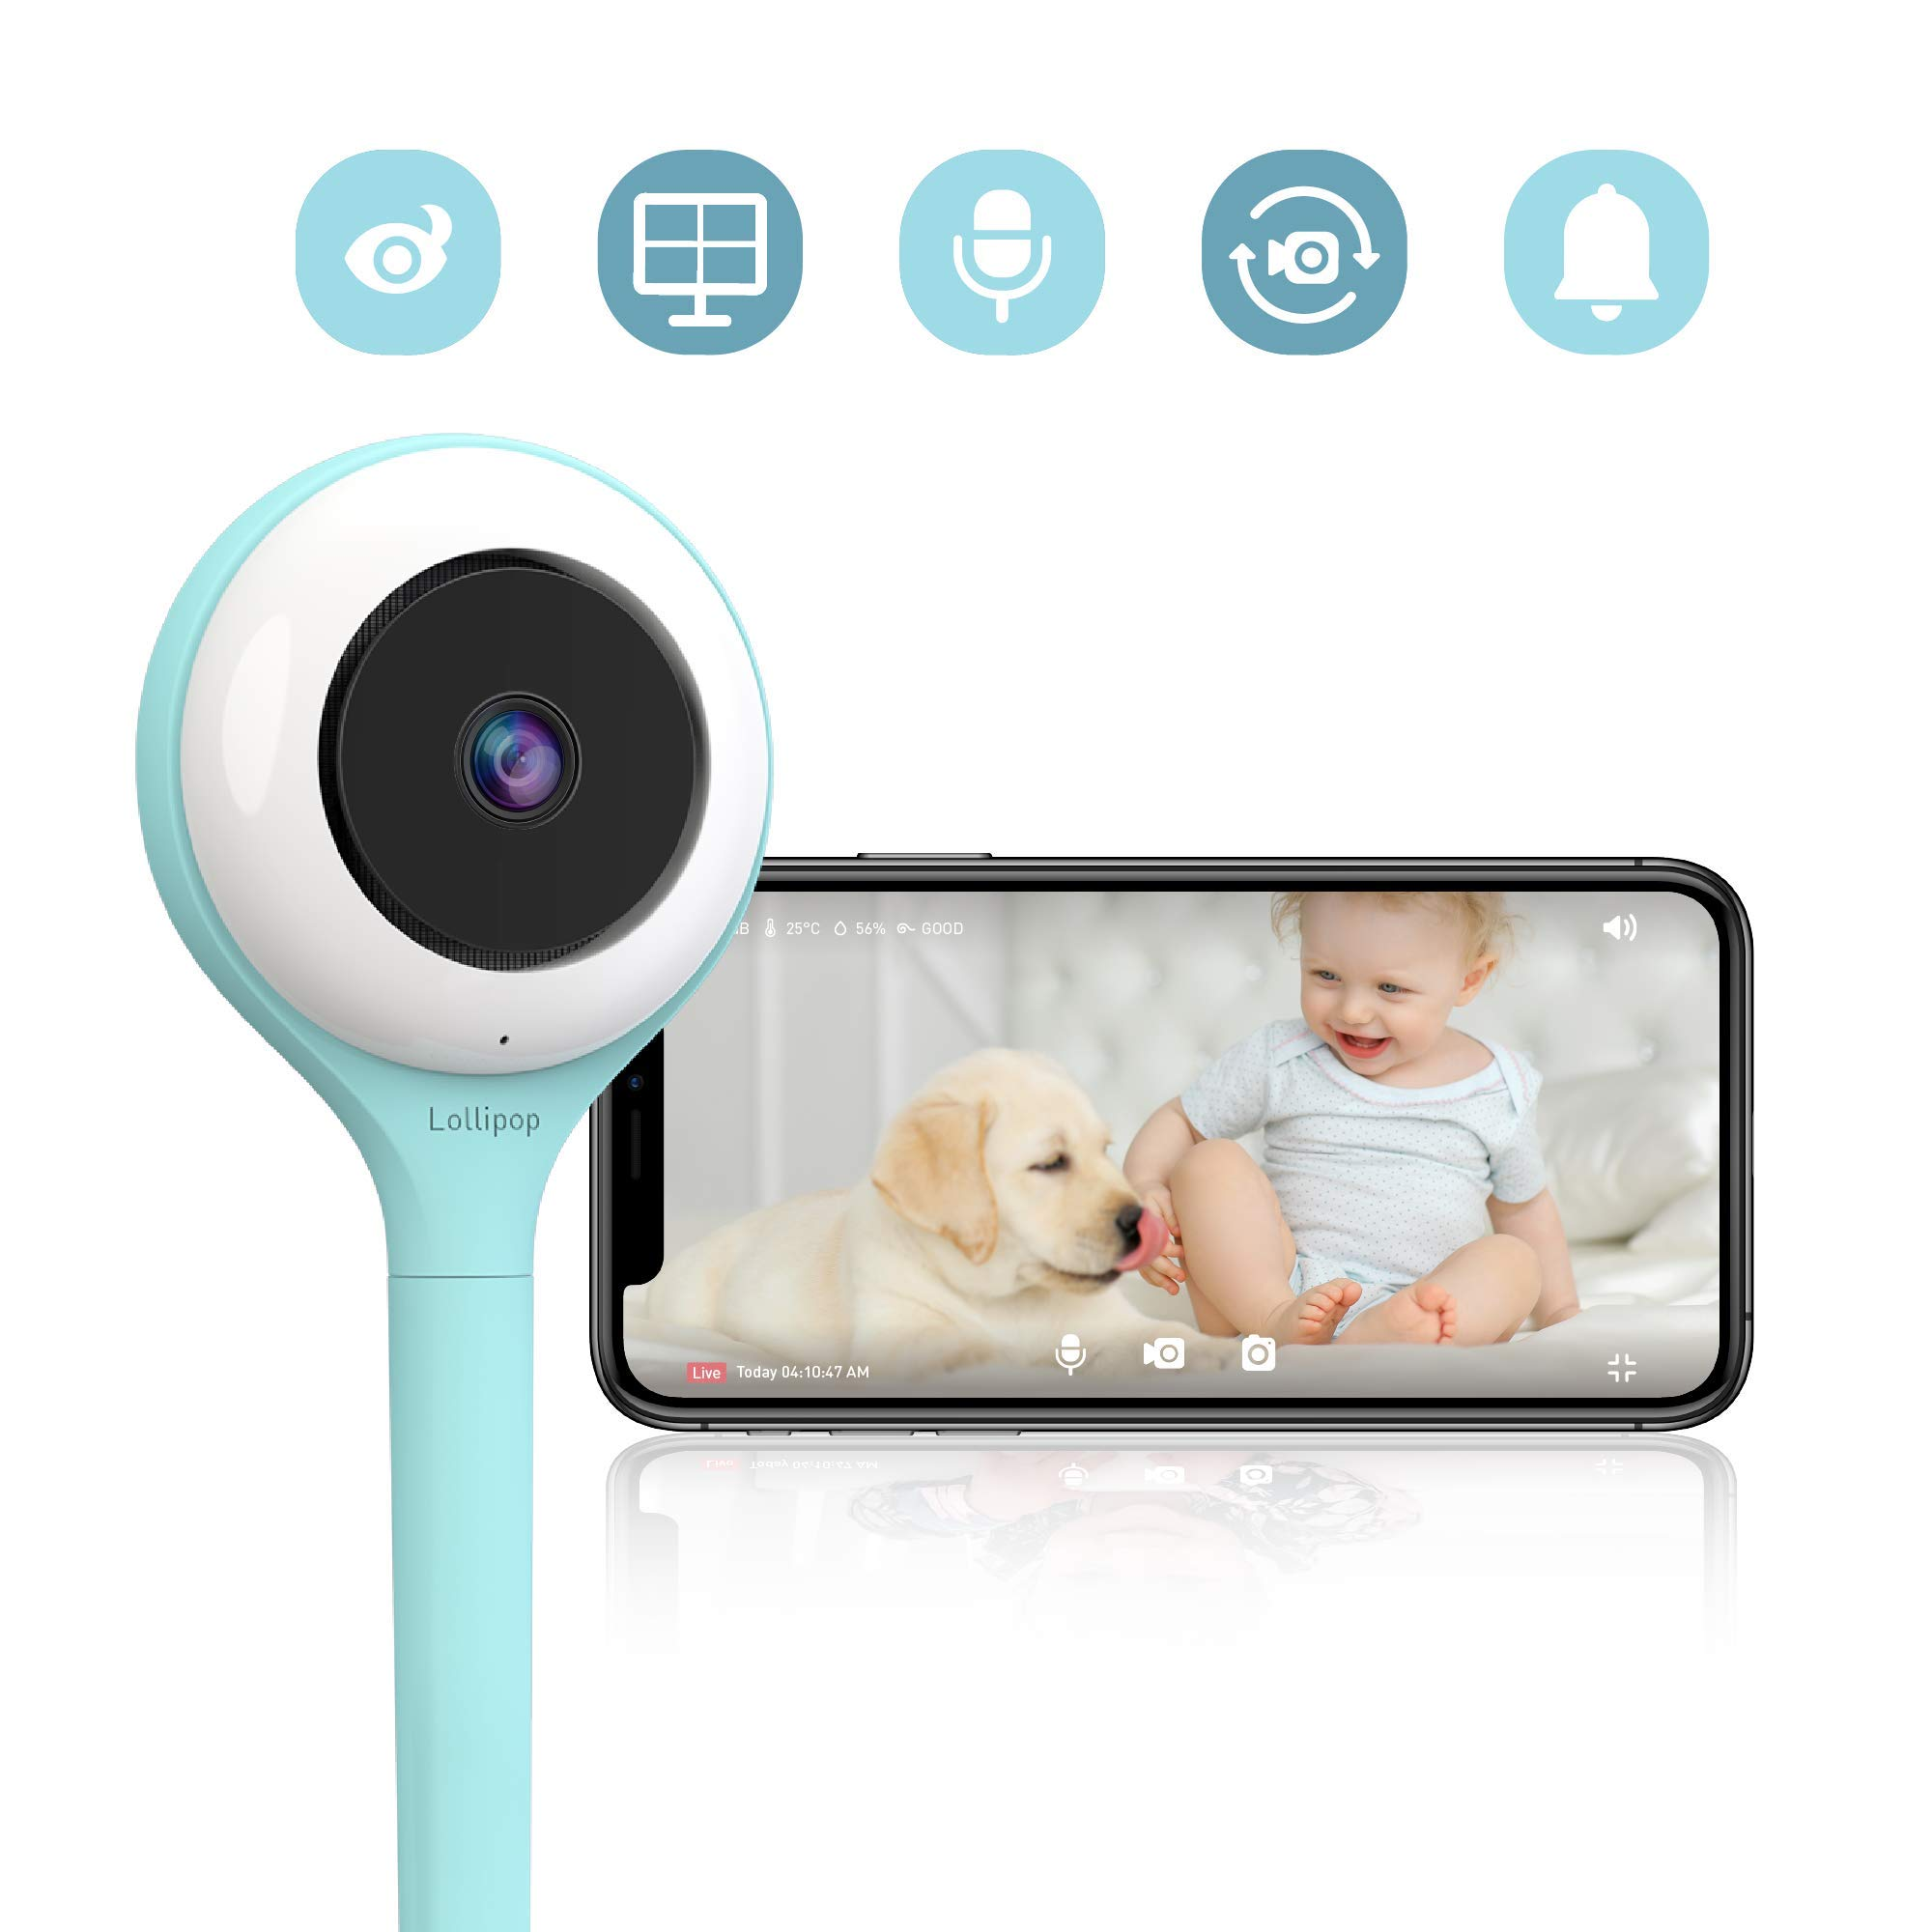 Lollipop HD WiFi Video Baby Monitor (Turquoise)- Supports 2 Cameras and Up, Night Vision, Noise & Crying Detection, 2-Way Talk Back, Wall Mount Included- Baby Boy Girl Shower Gift by Lollipop